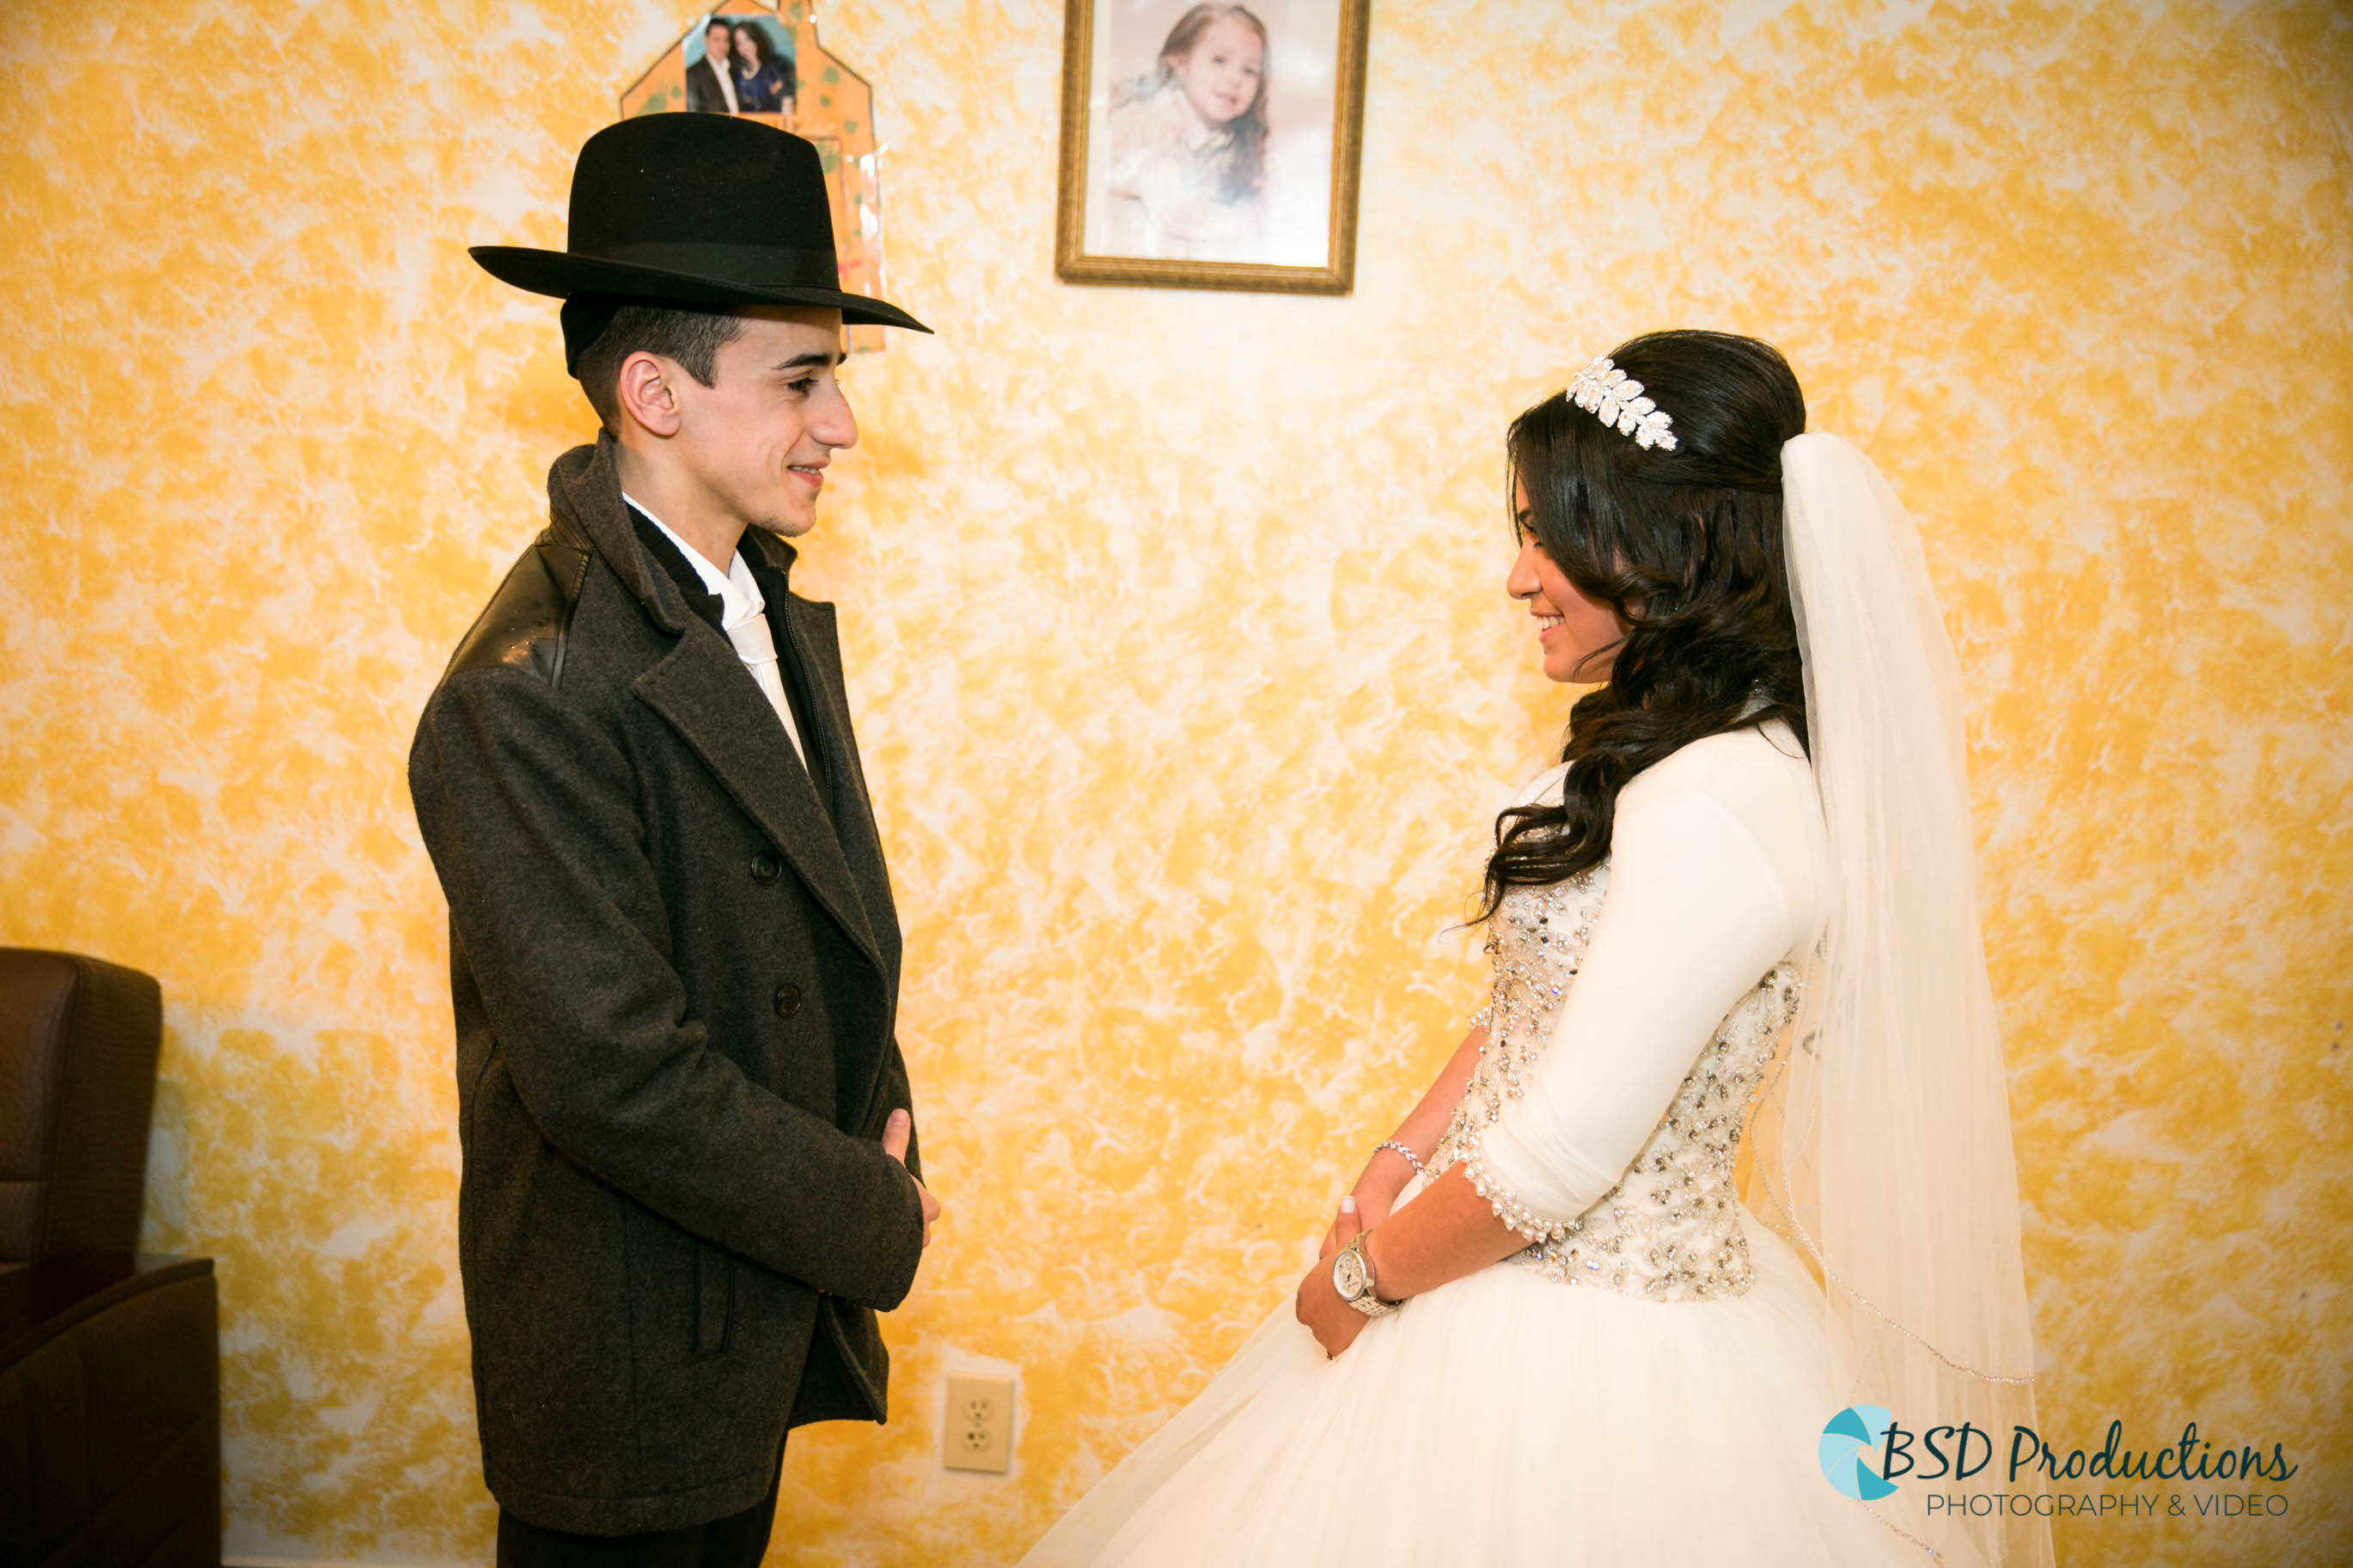 UH5A8638 Wedding – BSD Productions Photography